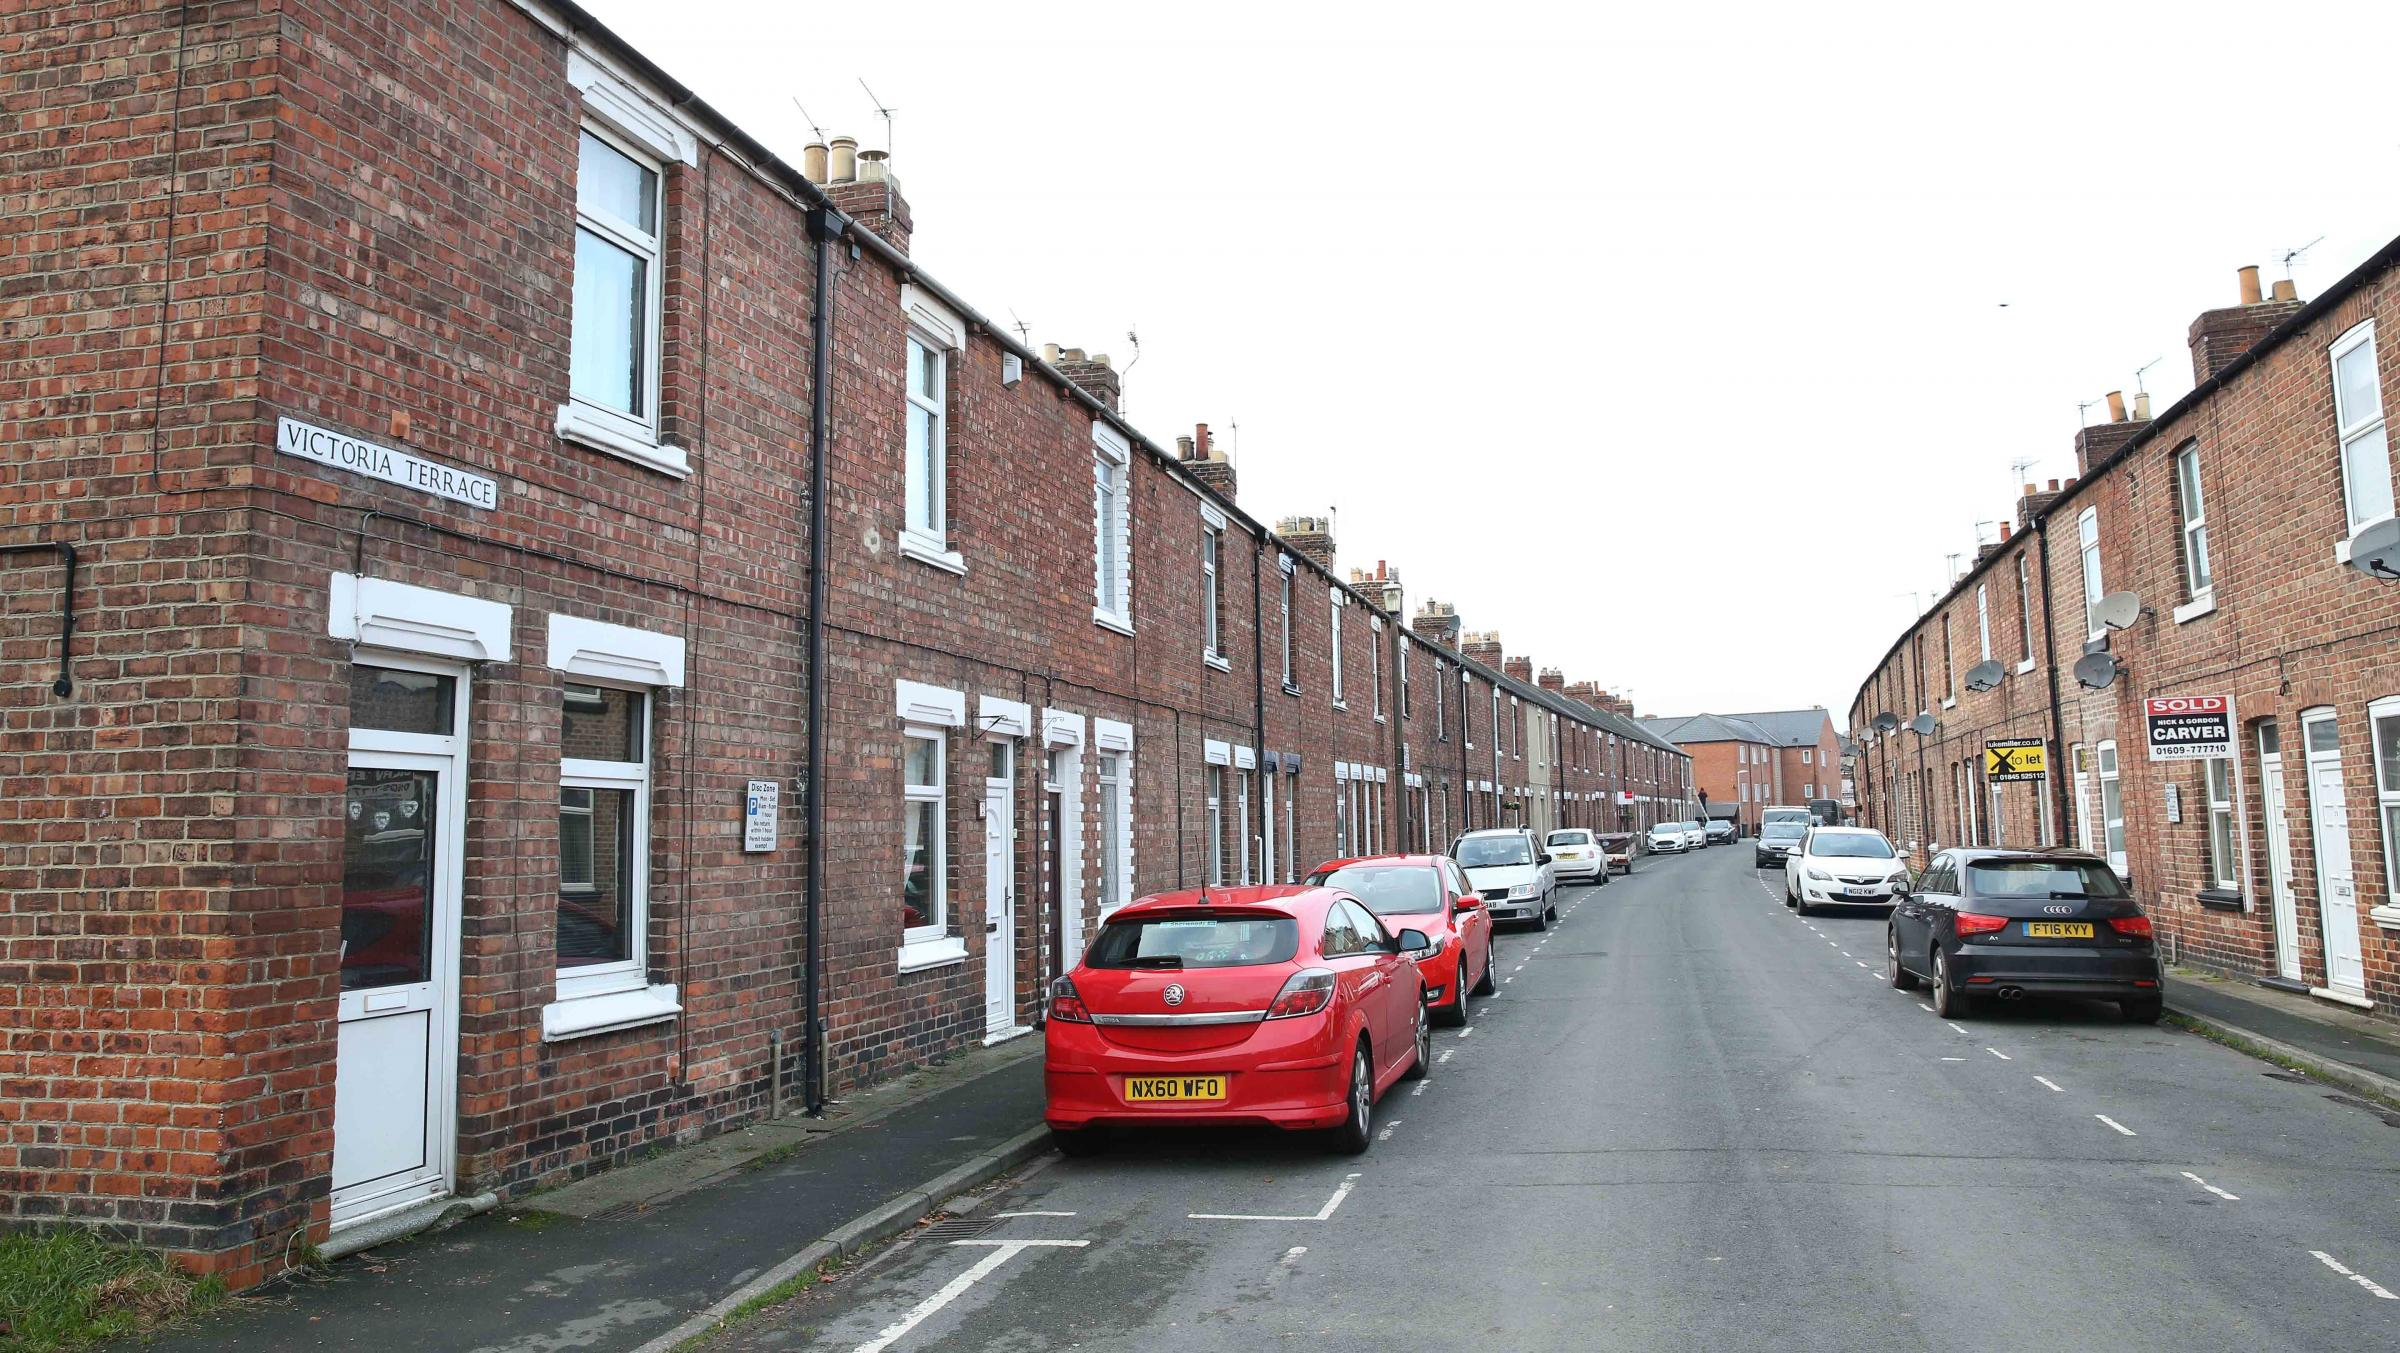 Parking Permit Price Hike Angers Northallerton Residents The